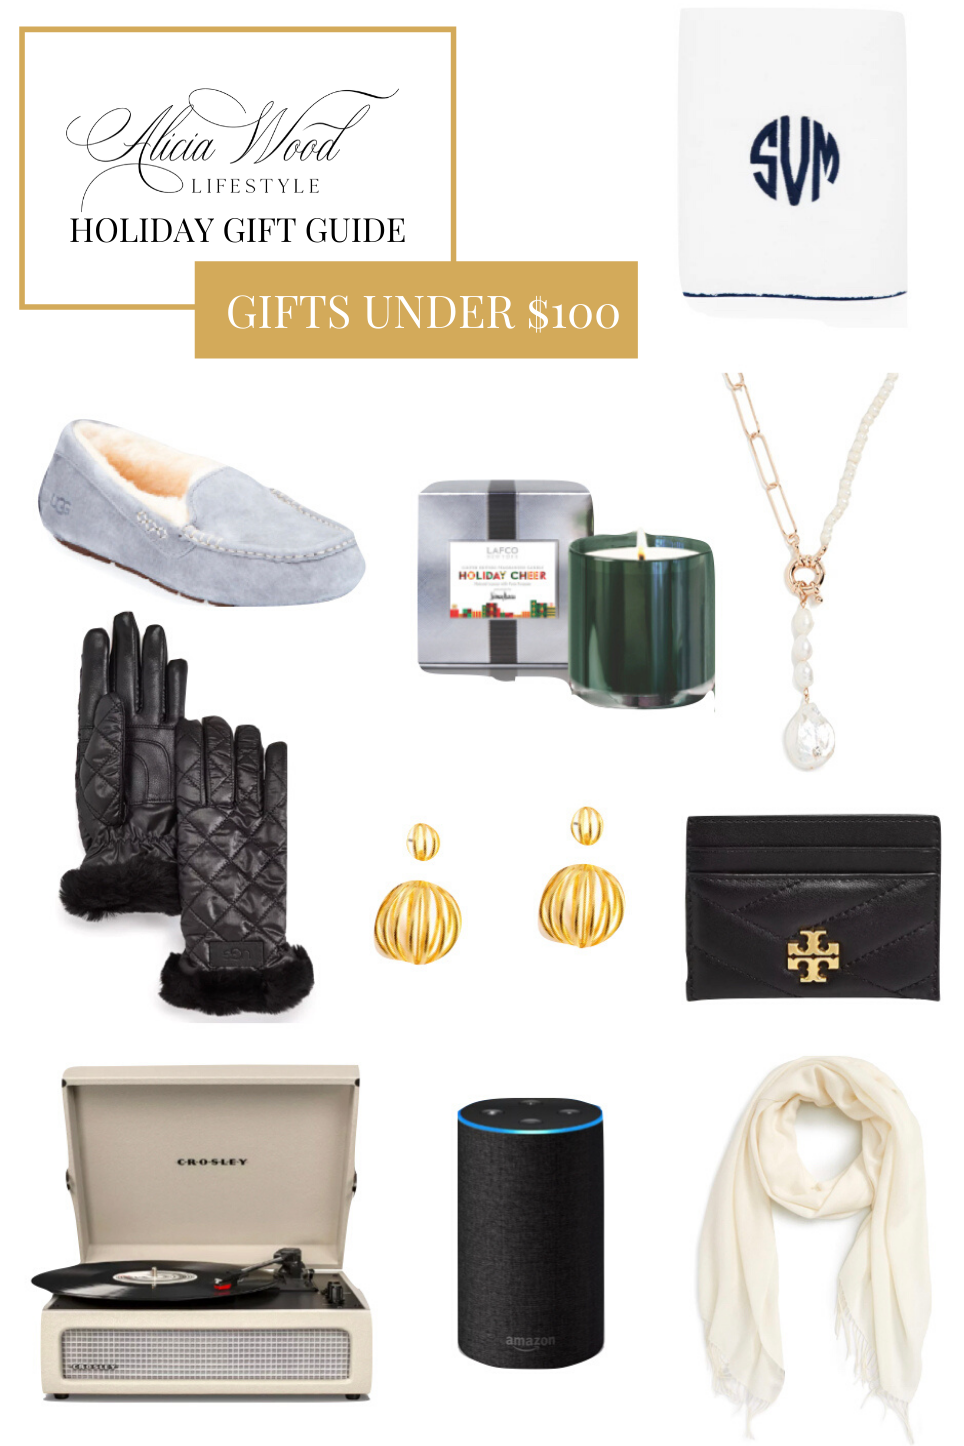 Gift Guide: Best Gifts Under $100, $50 and $25